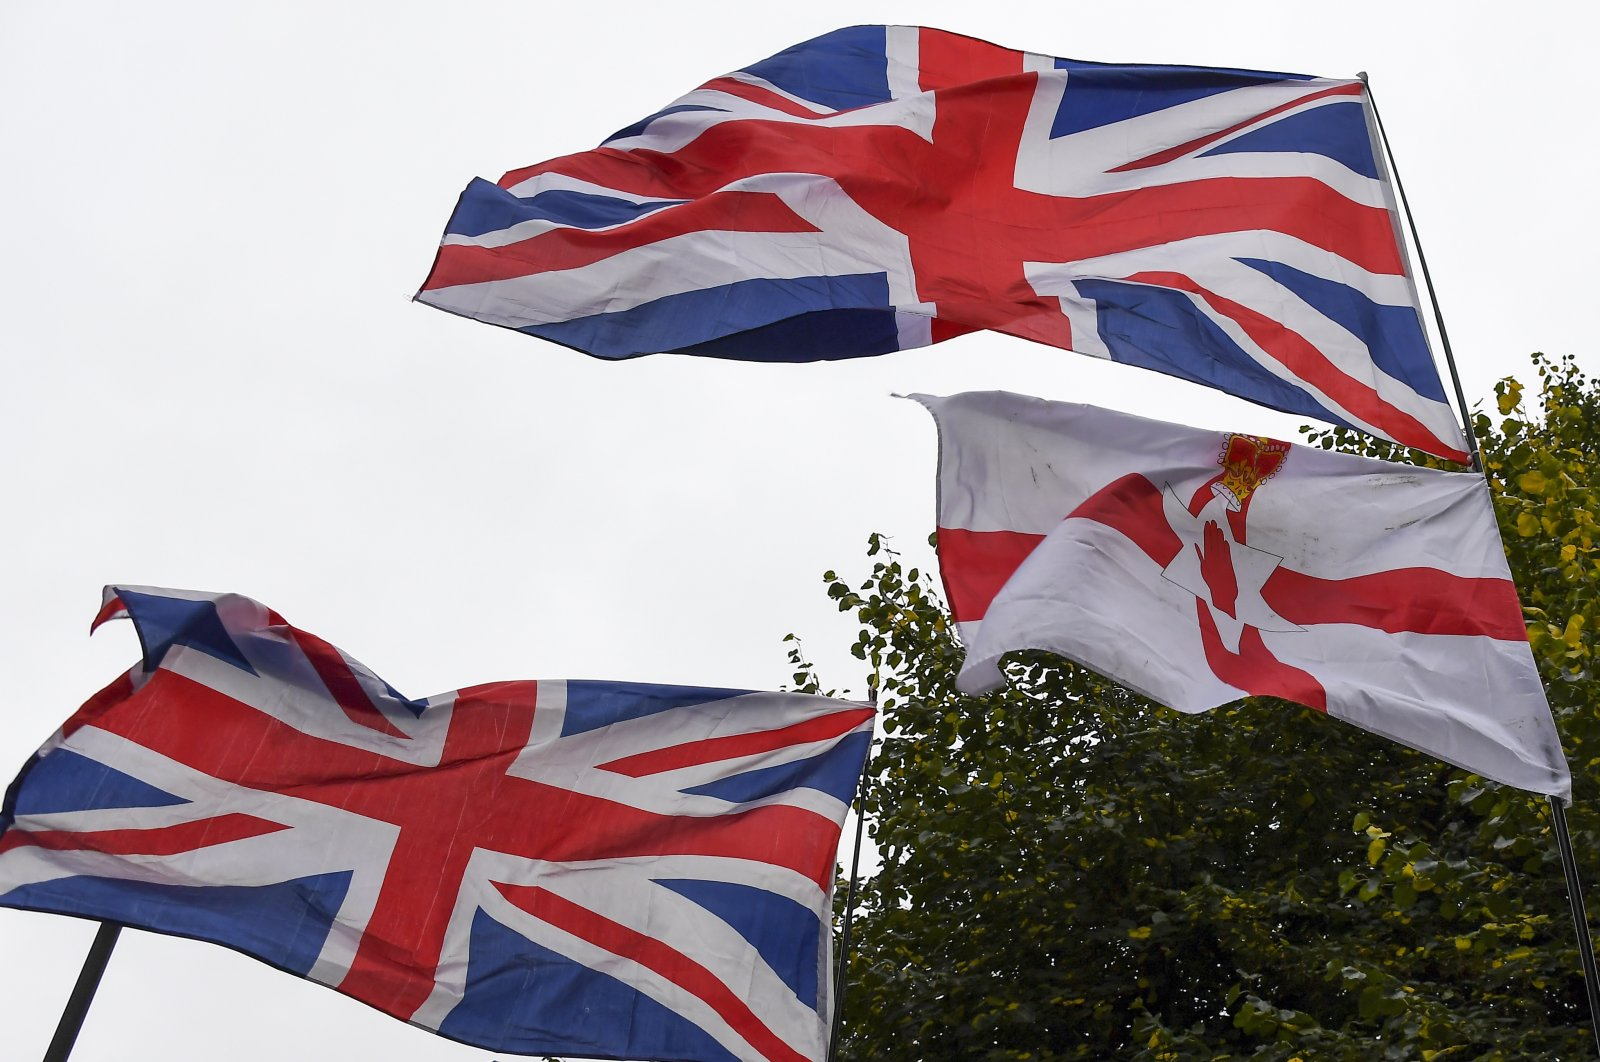 Northern Ireland and Union flags flutter outside the Houses of Parliament, in London, Oct. 14, 2019. (AP Photo)